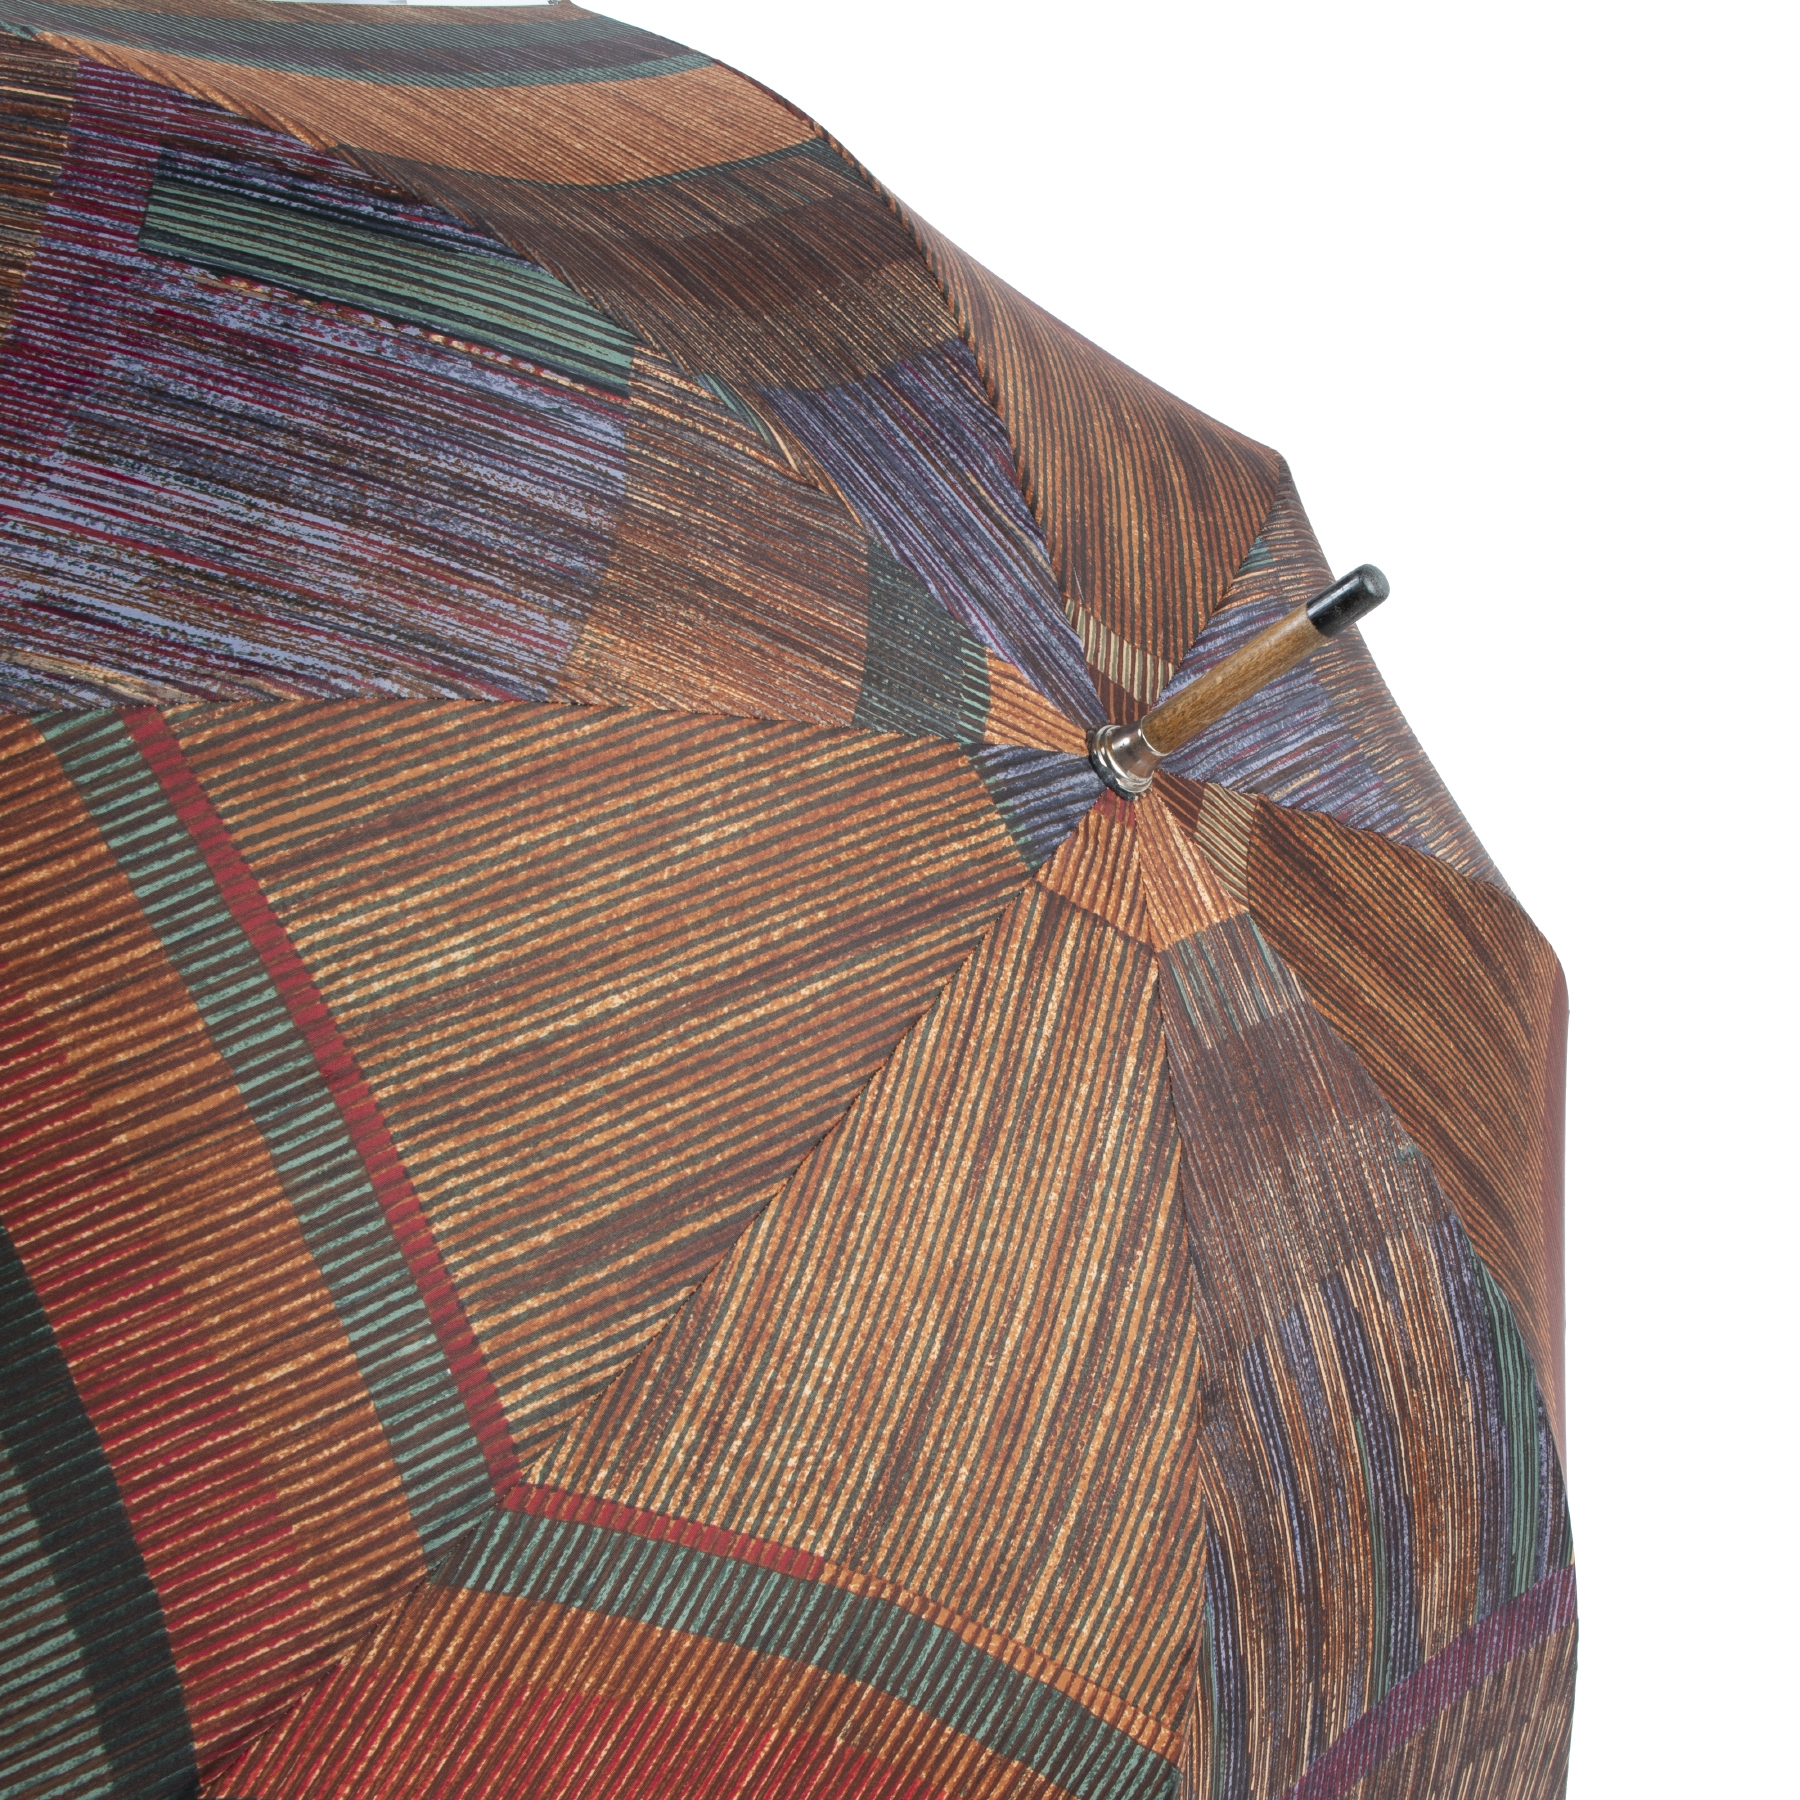 Buy this authentic second-hand vintage Delvaux Multicolor Umbrella  at online webshop LabelLOV. Safe and secure shopping. Koop deze authentieke tweedehands vintage Delvaux Multicolor Umbrella bij online webshop LabelLOV.